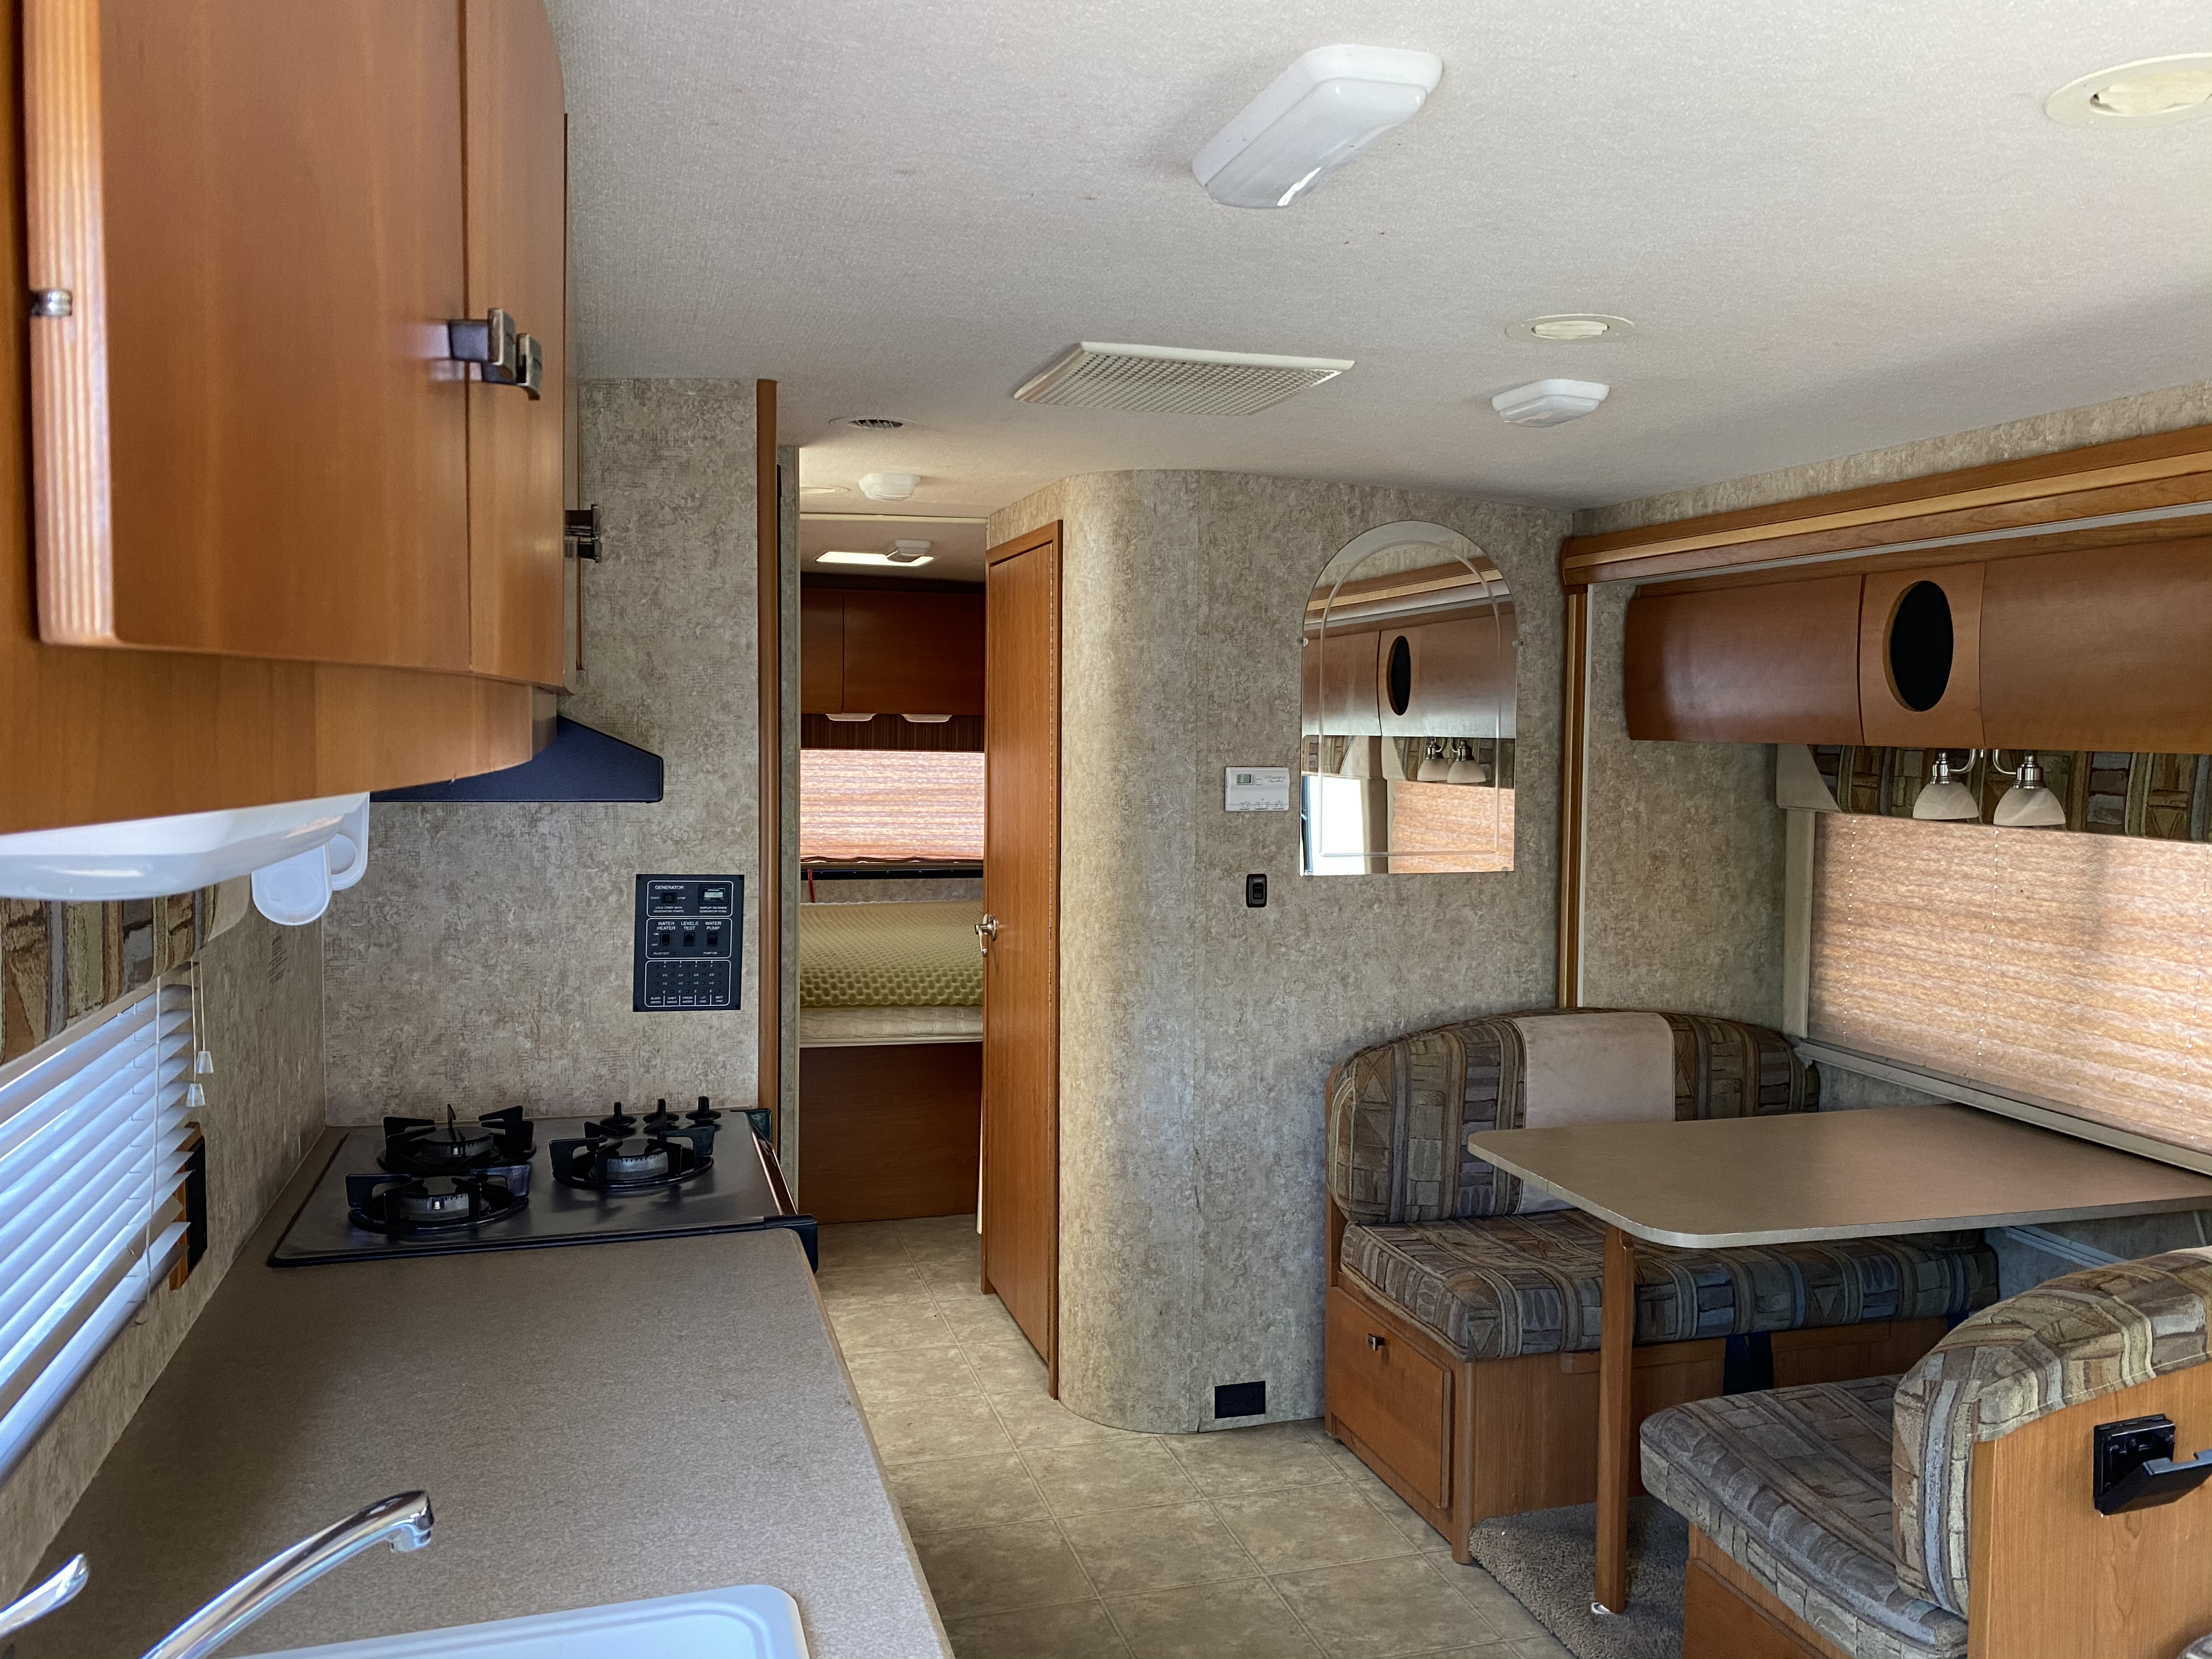 Kitchen & Dining Area With Lots Of Cabinet Room- Dinette Folds into Single Bed For One Adult or A Few Children. Winnebago Outlook 2007